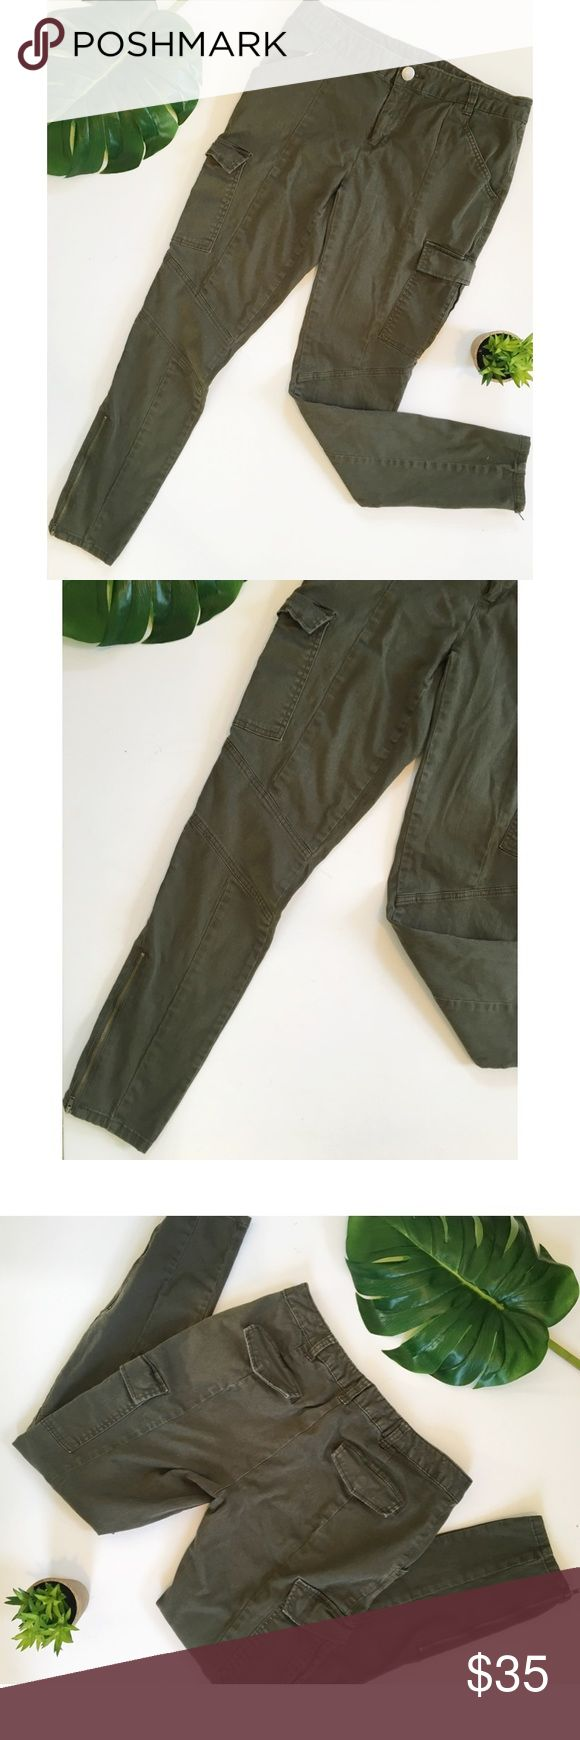 """INC Army Green Skinny Cargo Moto Pants Super cute dark green Moto style skinny pants. Khaki material. Flap pockets and zippers at the ankles. Size 8. Measurements are approximate: inseam 30"""", waist 16"""" across laid flat, 8.5"""" rise. INC International Concepts Pants Skinny"""